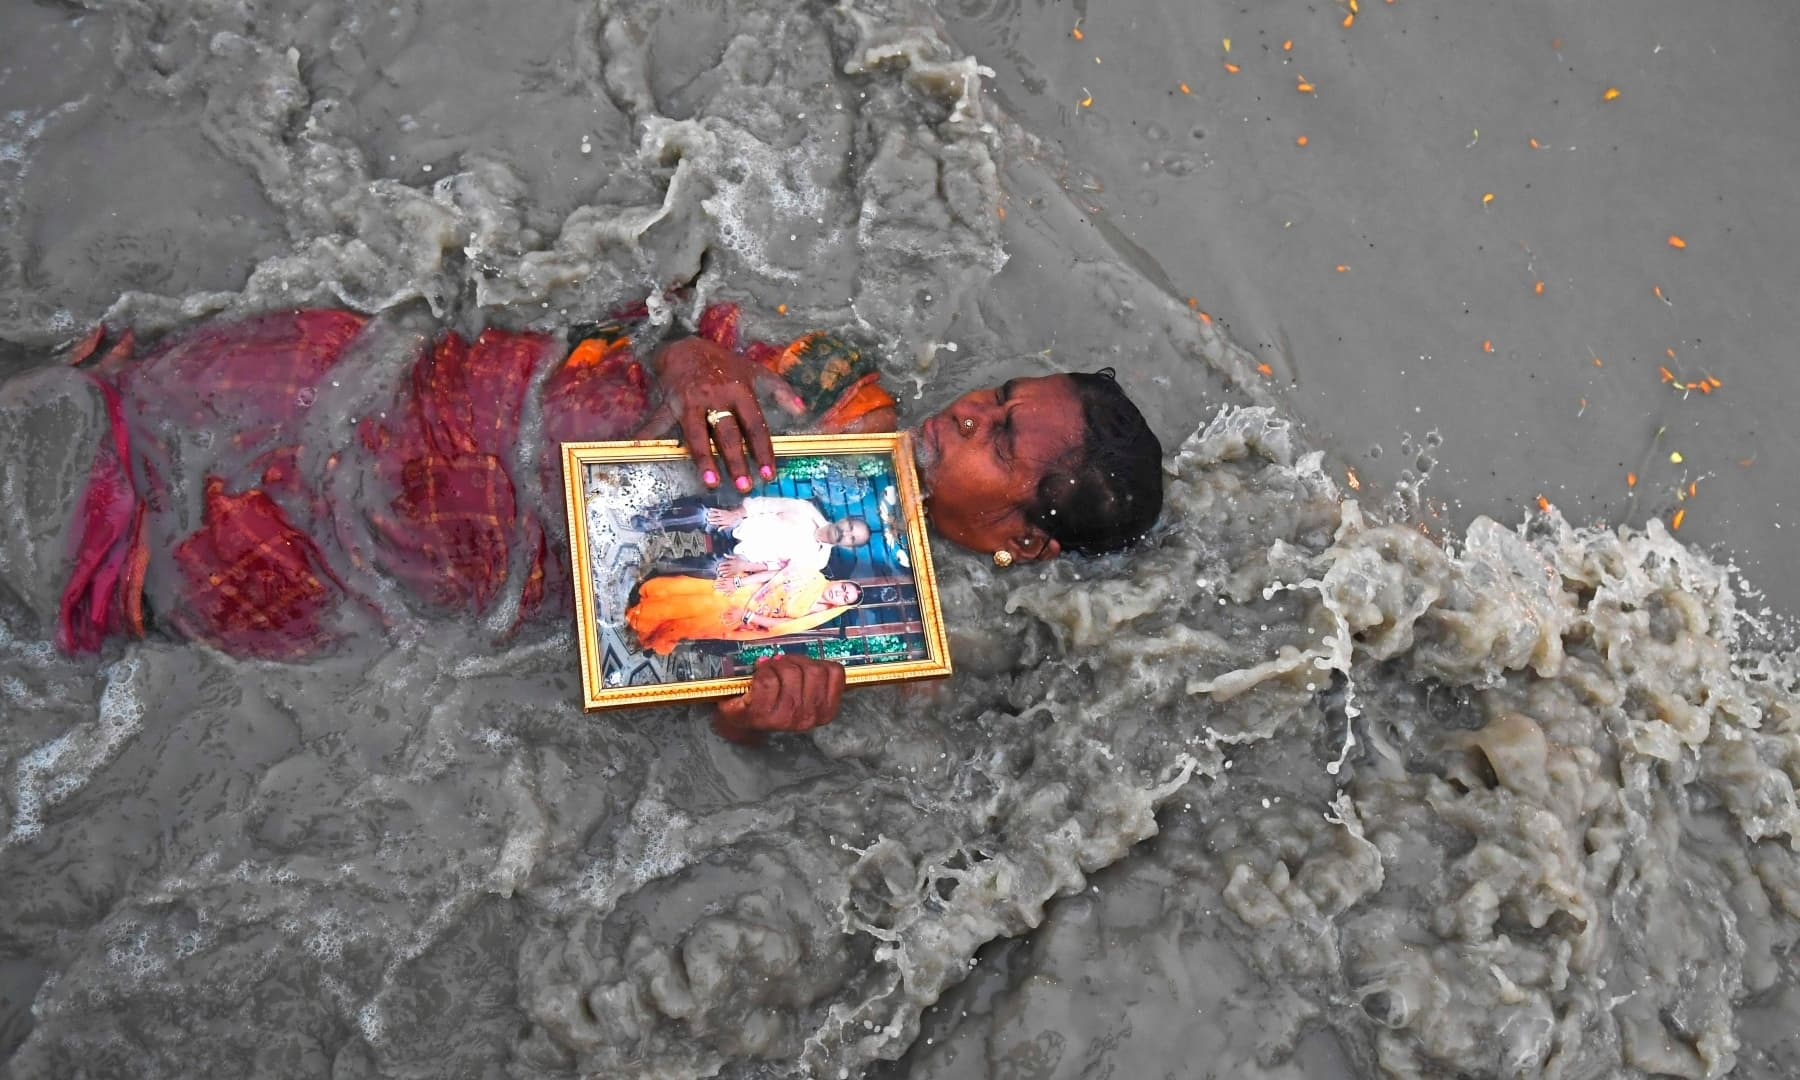 A Hindu pilgrim holds a picture of herself with her late husband as she takes a holy dip at the confluence of the Ganges and the Bay of Bengal during the Gangasagar Mela on the occasion of Makar Sankranti, at Sagar Island, south of Kolkata. — AFP